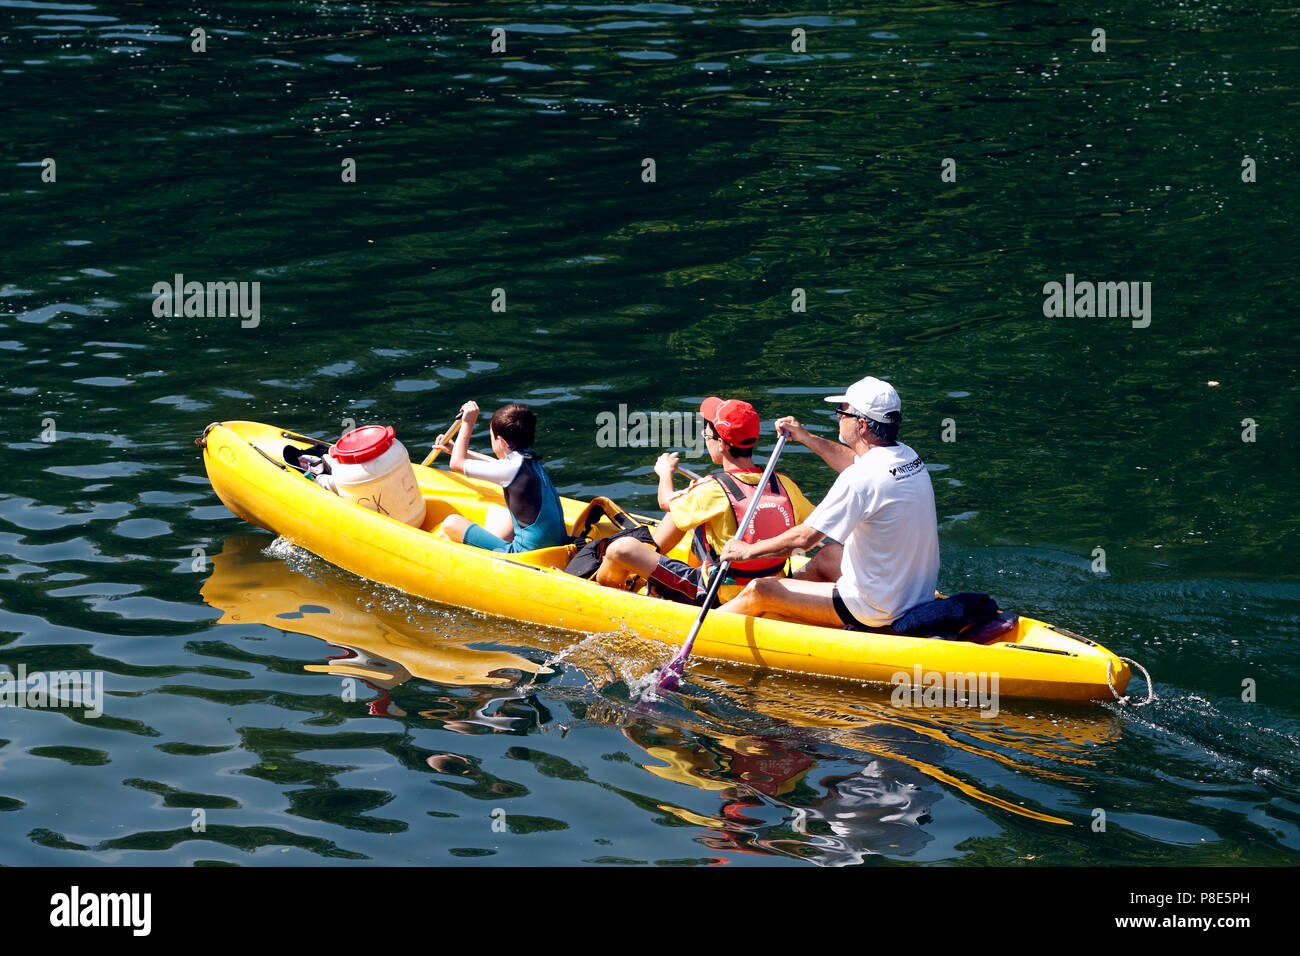 Canoeing downhill on the the Herault river, Laroque, Occitanie France - Stock Image